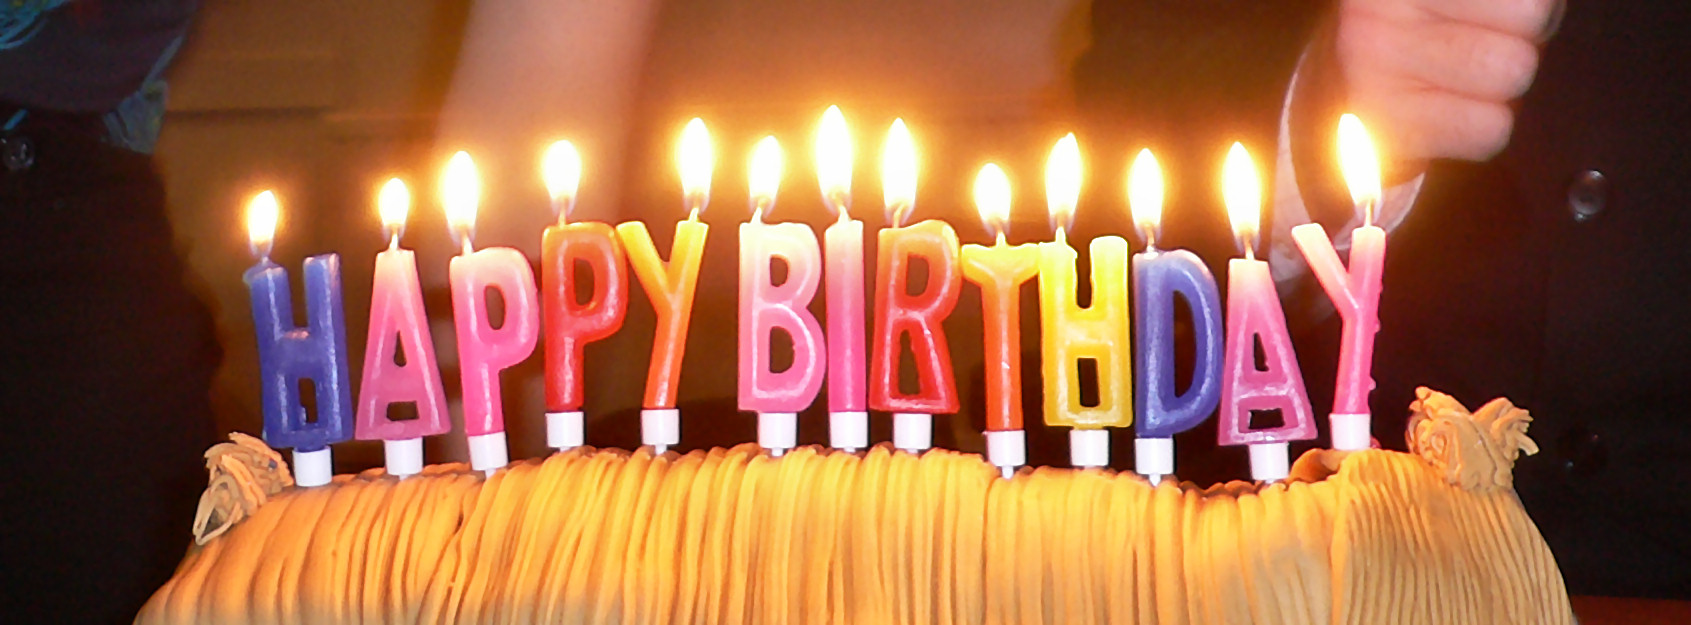 Here are some birthday candles you can blow to make your birthday